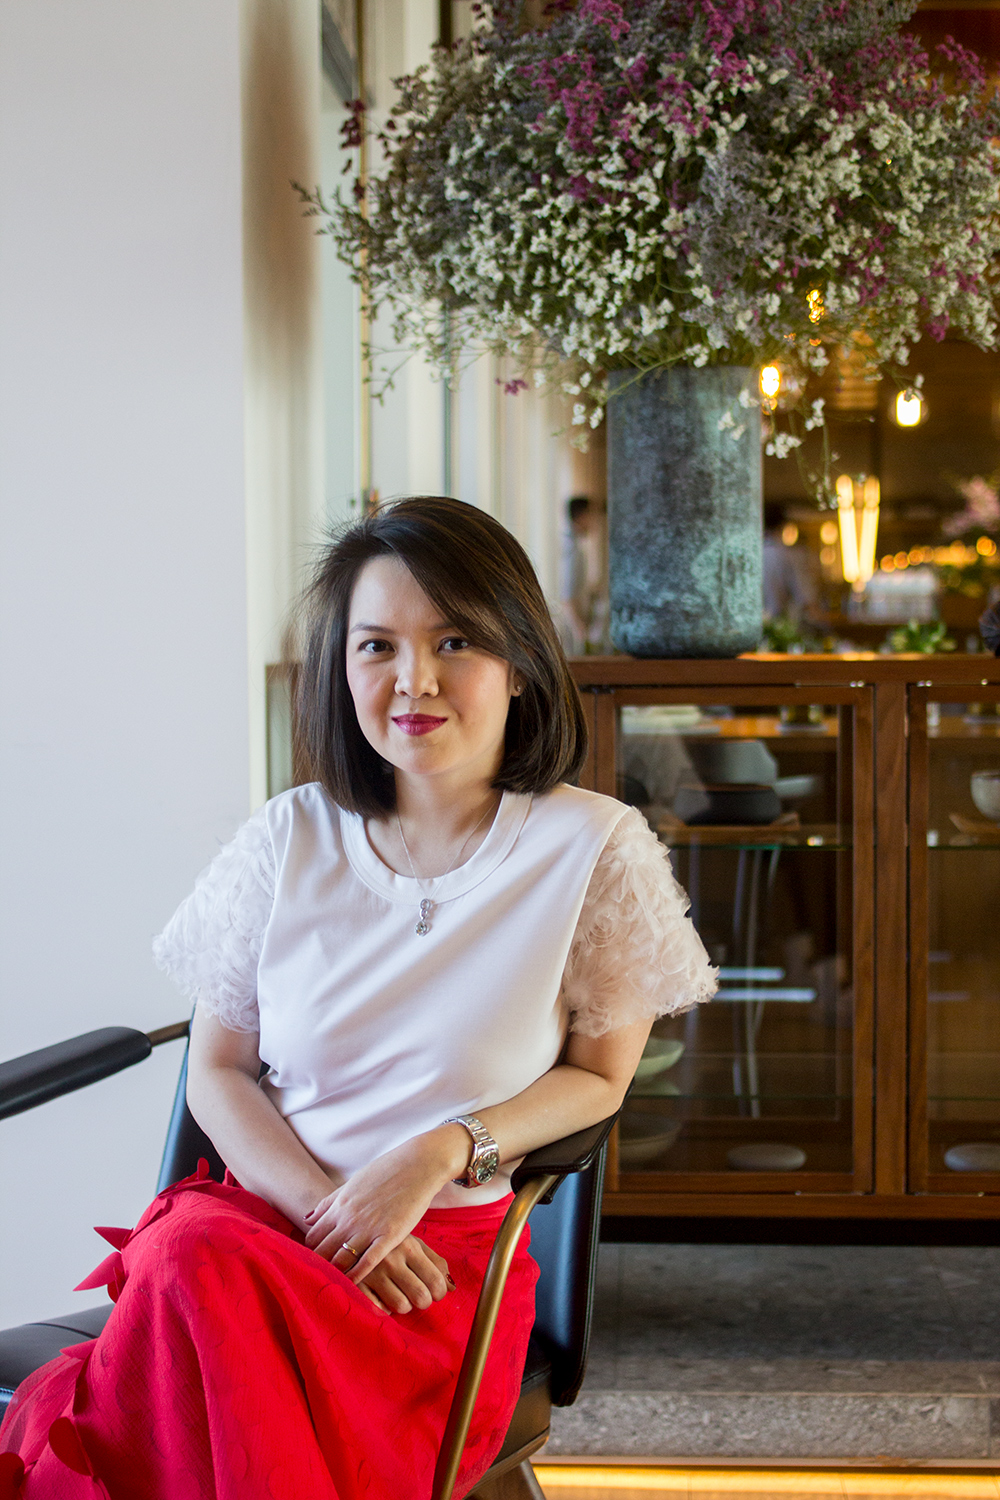 Tay Hui Ying, Director of Marketing of Platform Hospitality